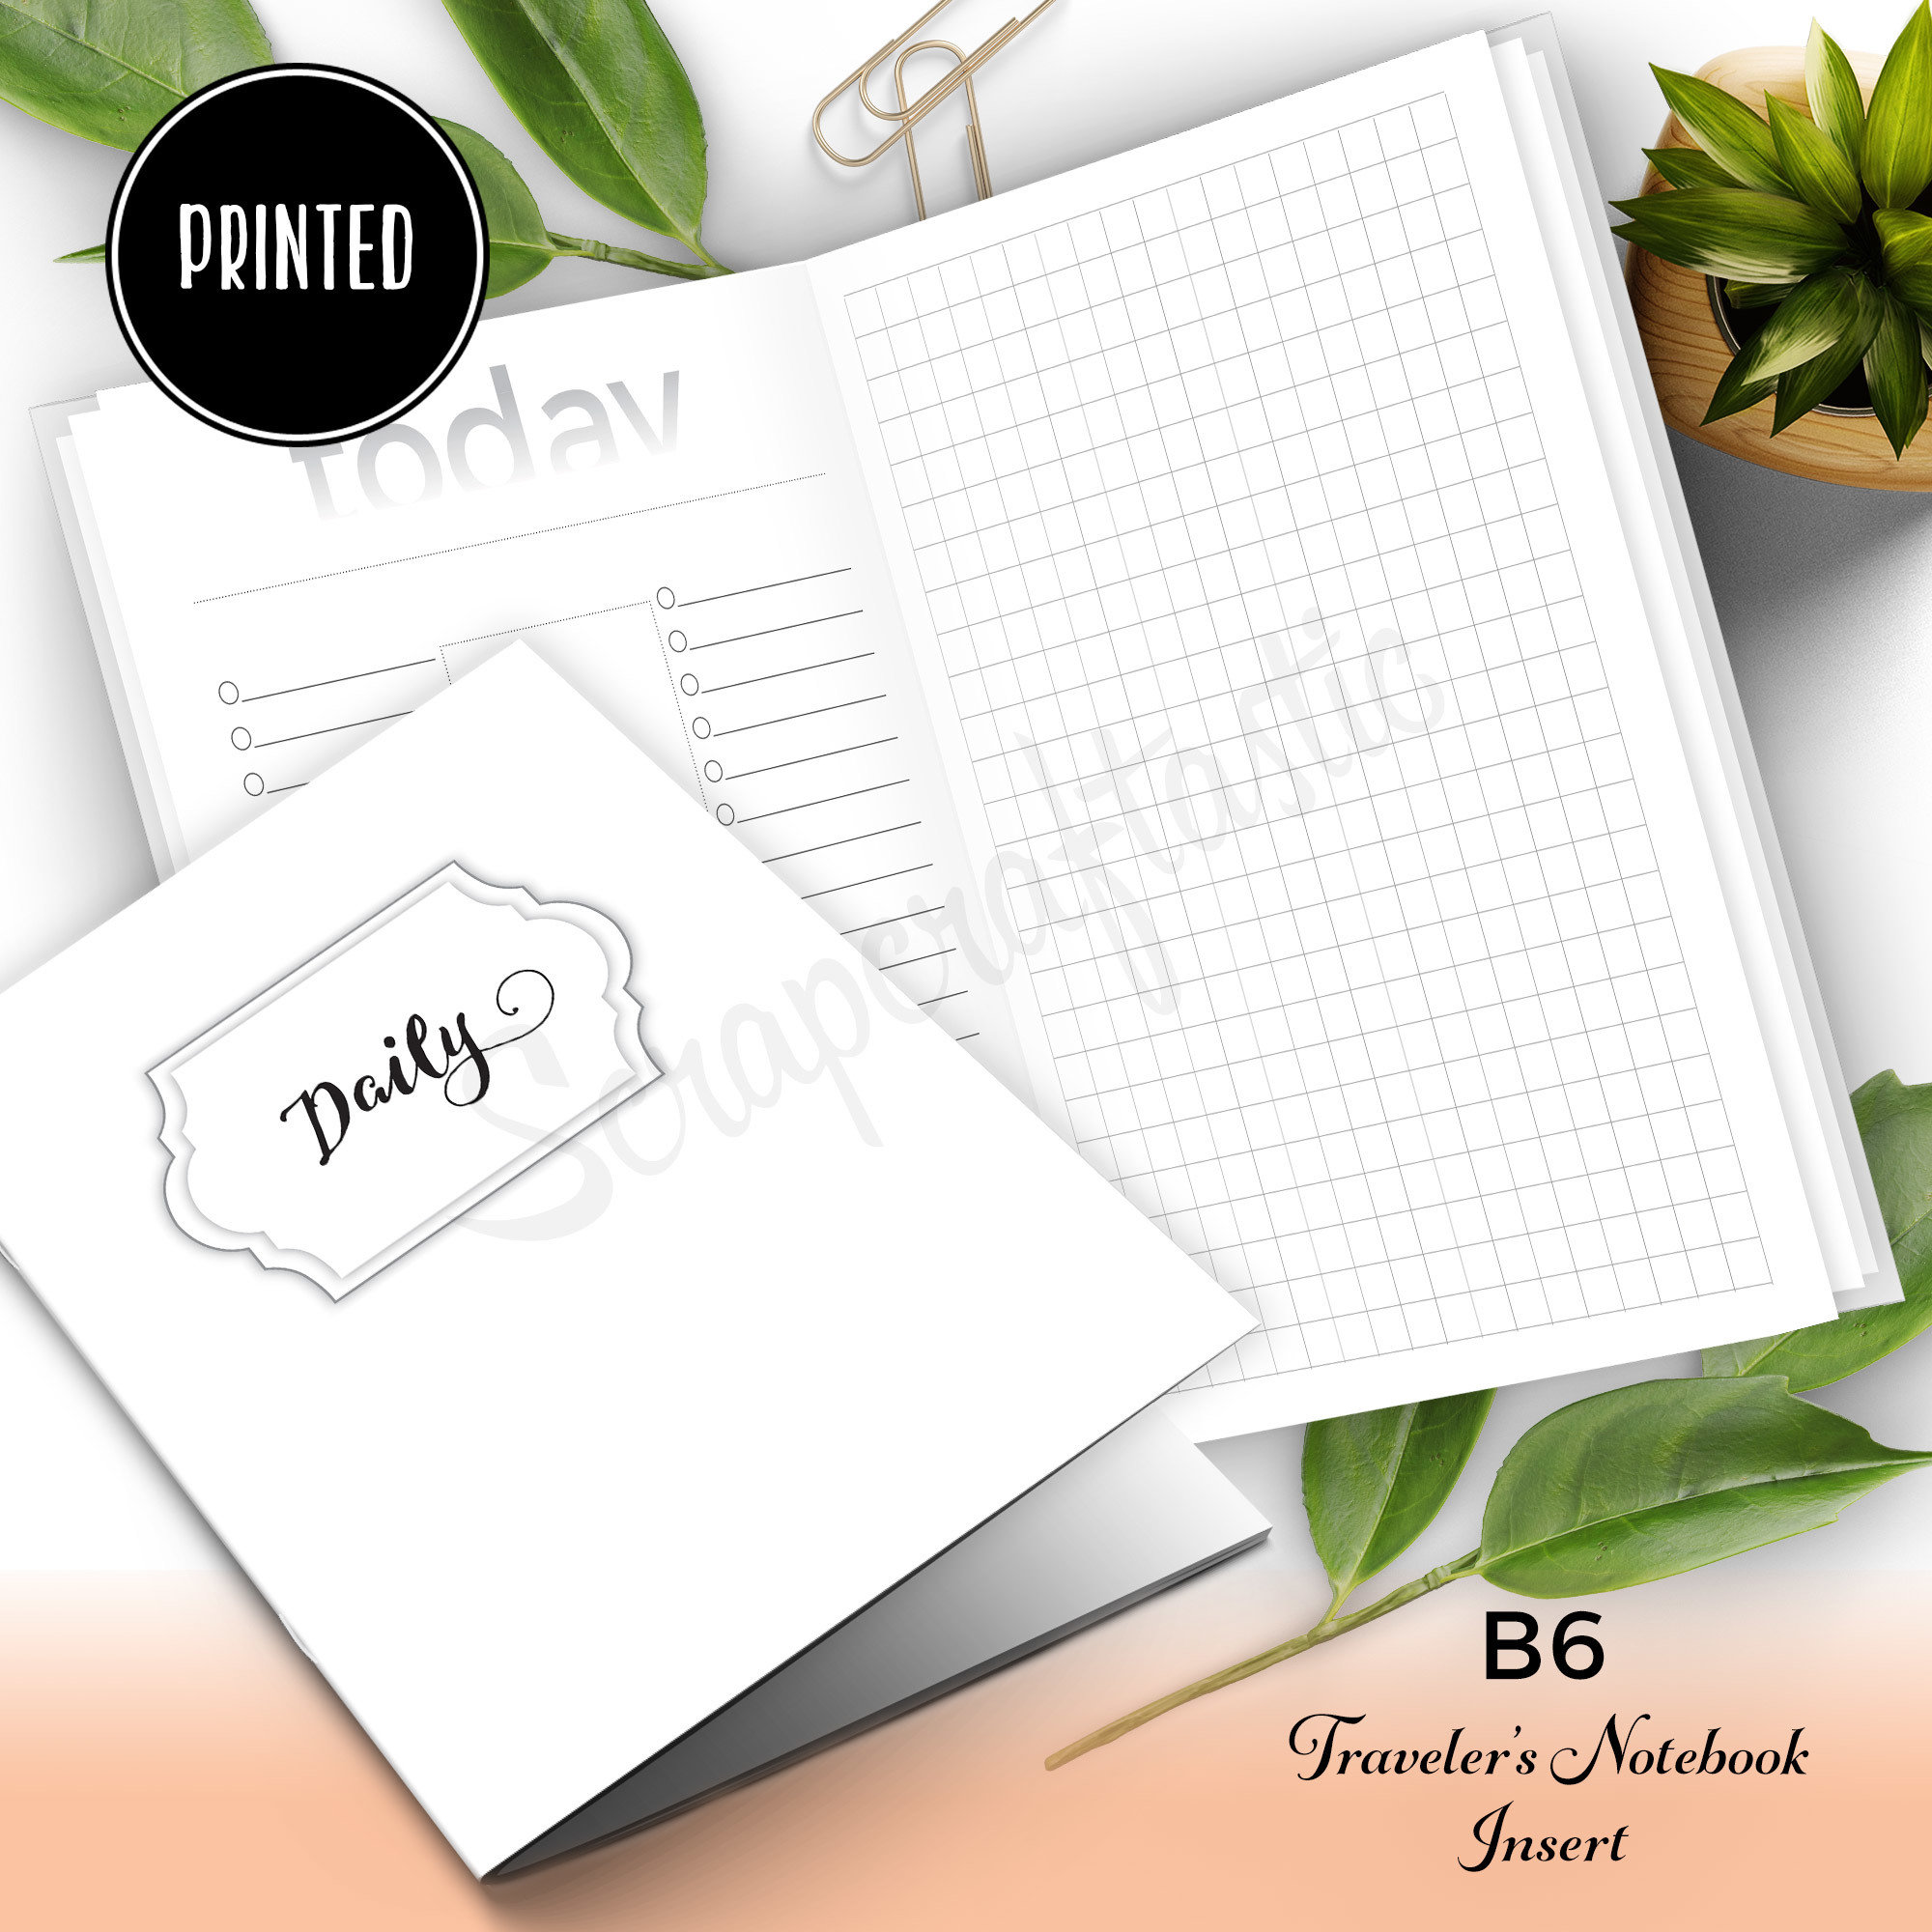 Daily Lists, Column and Grid {PRINTED} B6 Traveler's Notebook Insert 50025P